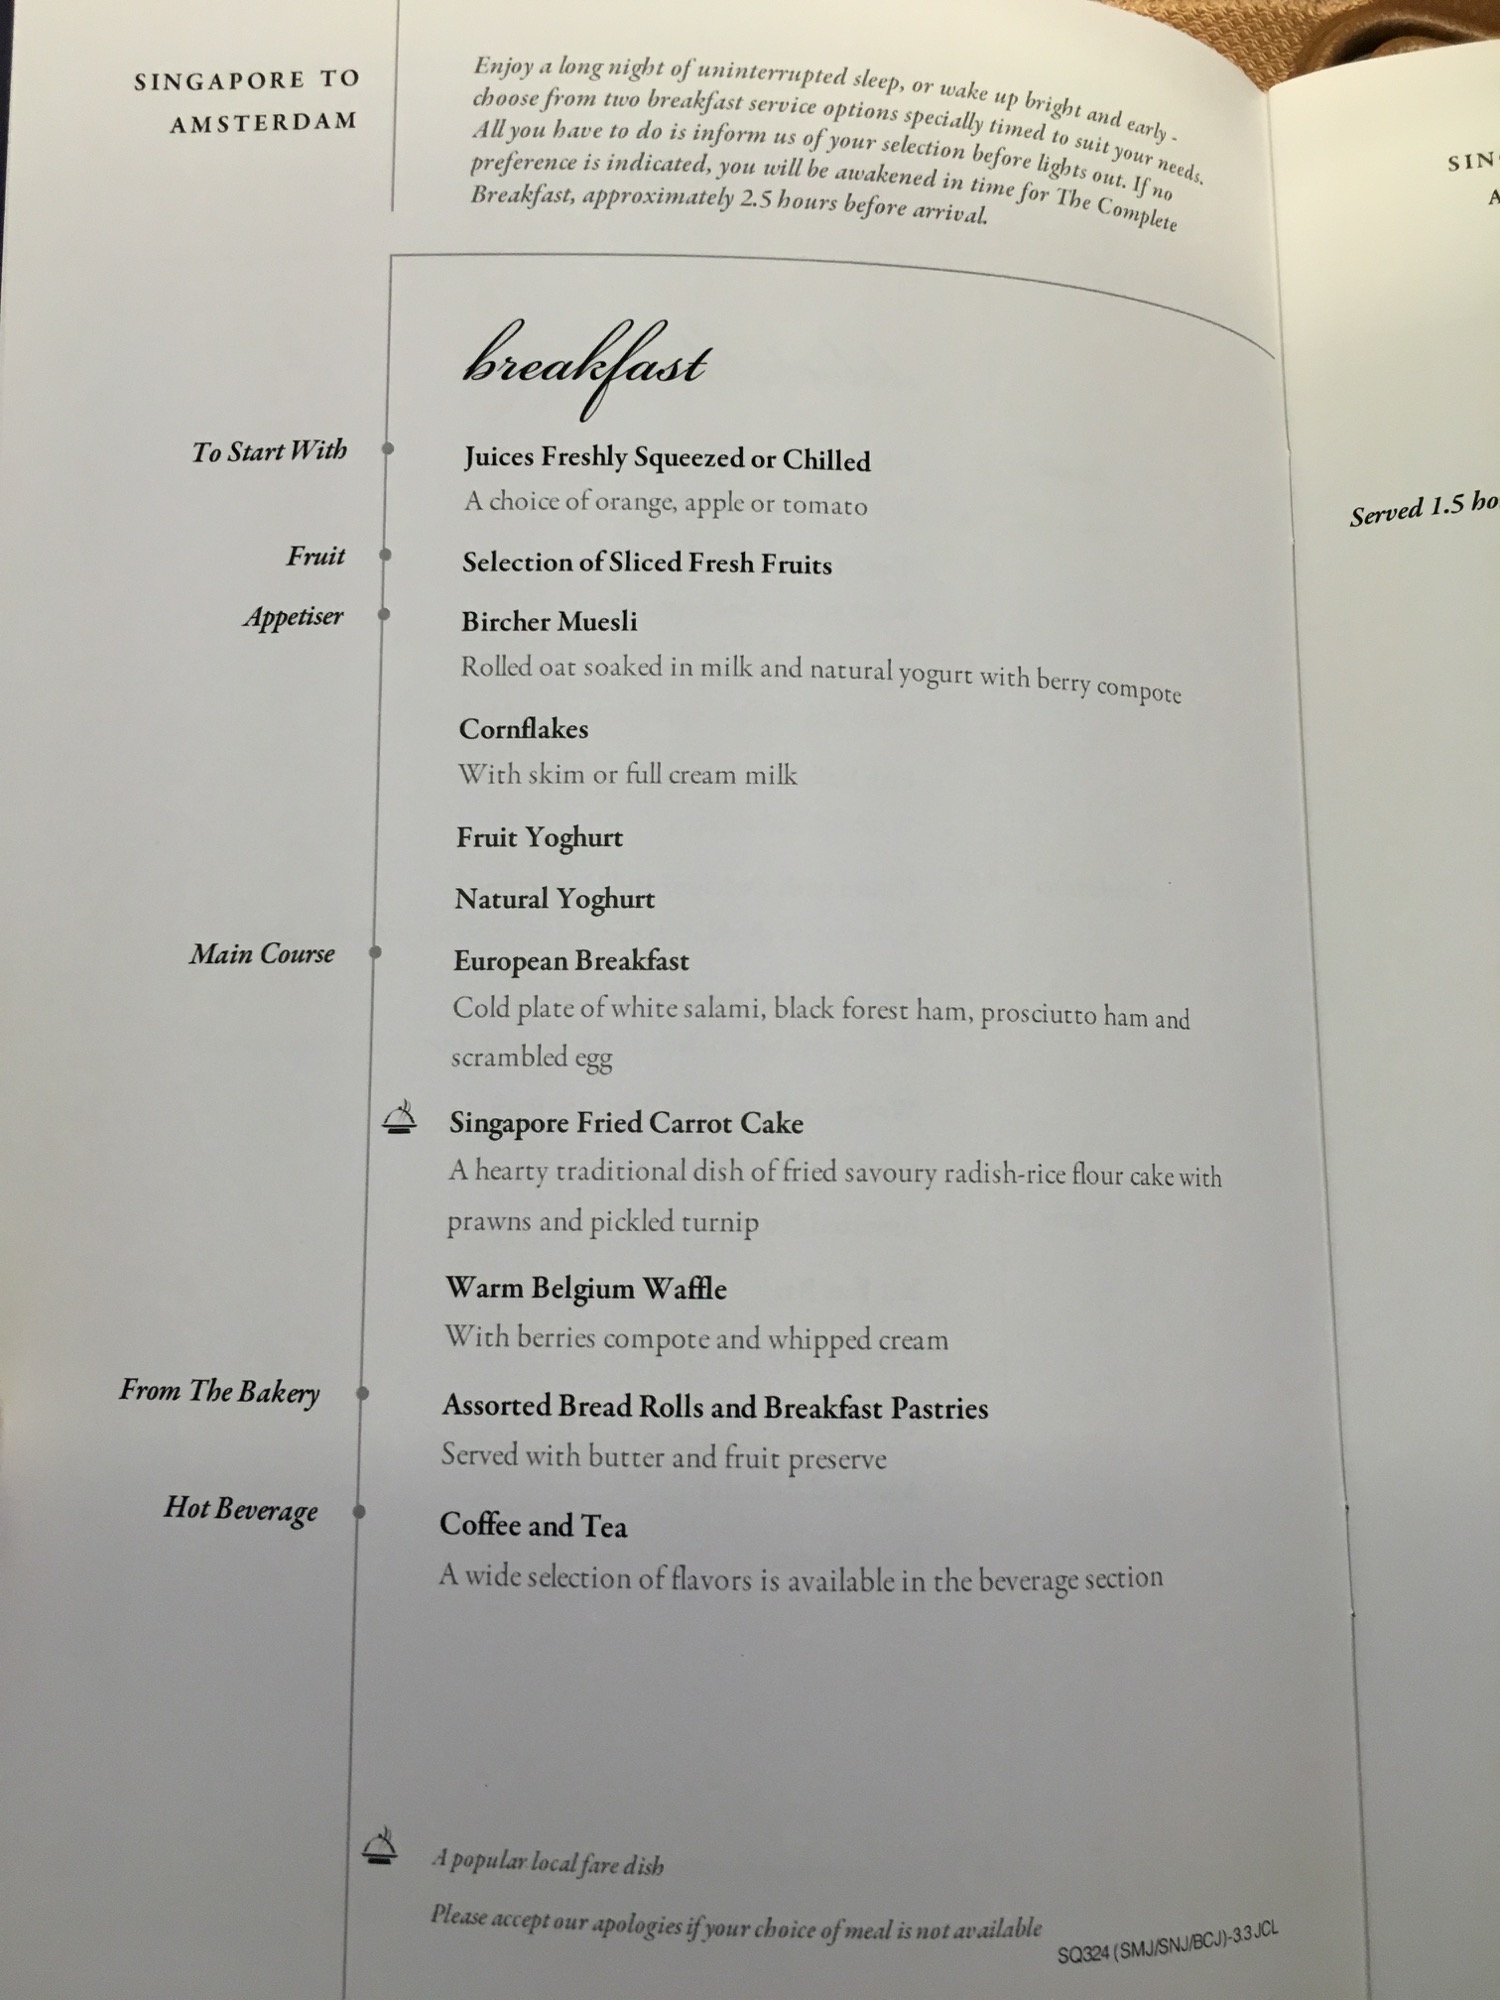 Singapore Airlines A350 Business Class Menu - 4